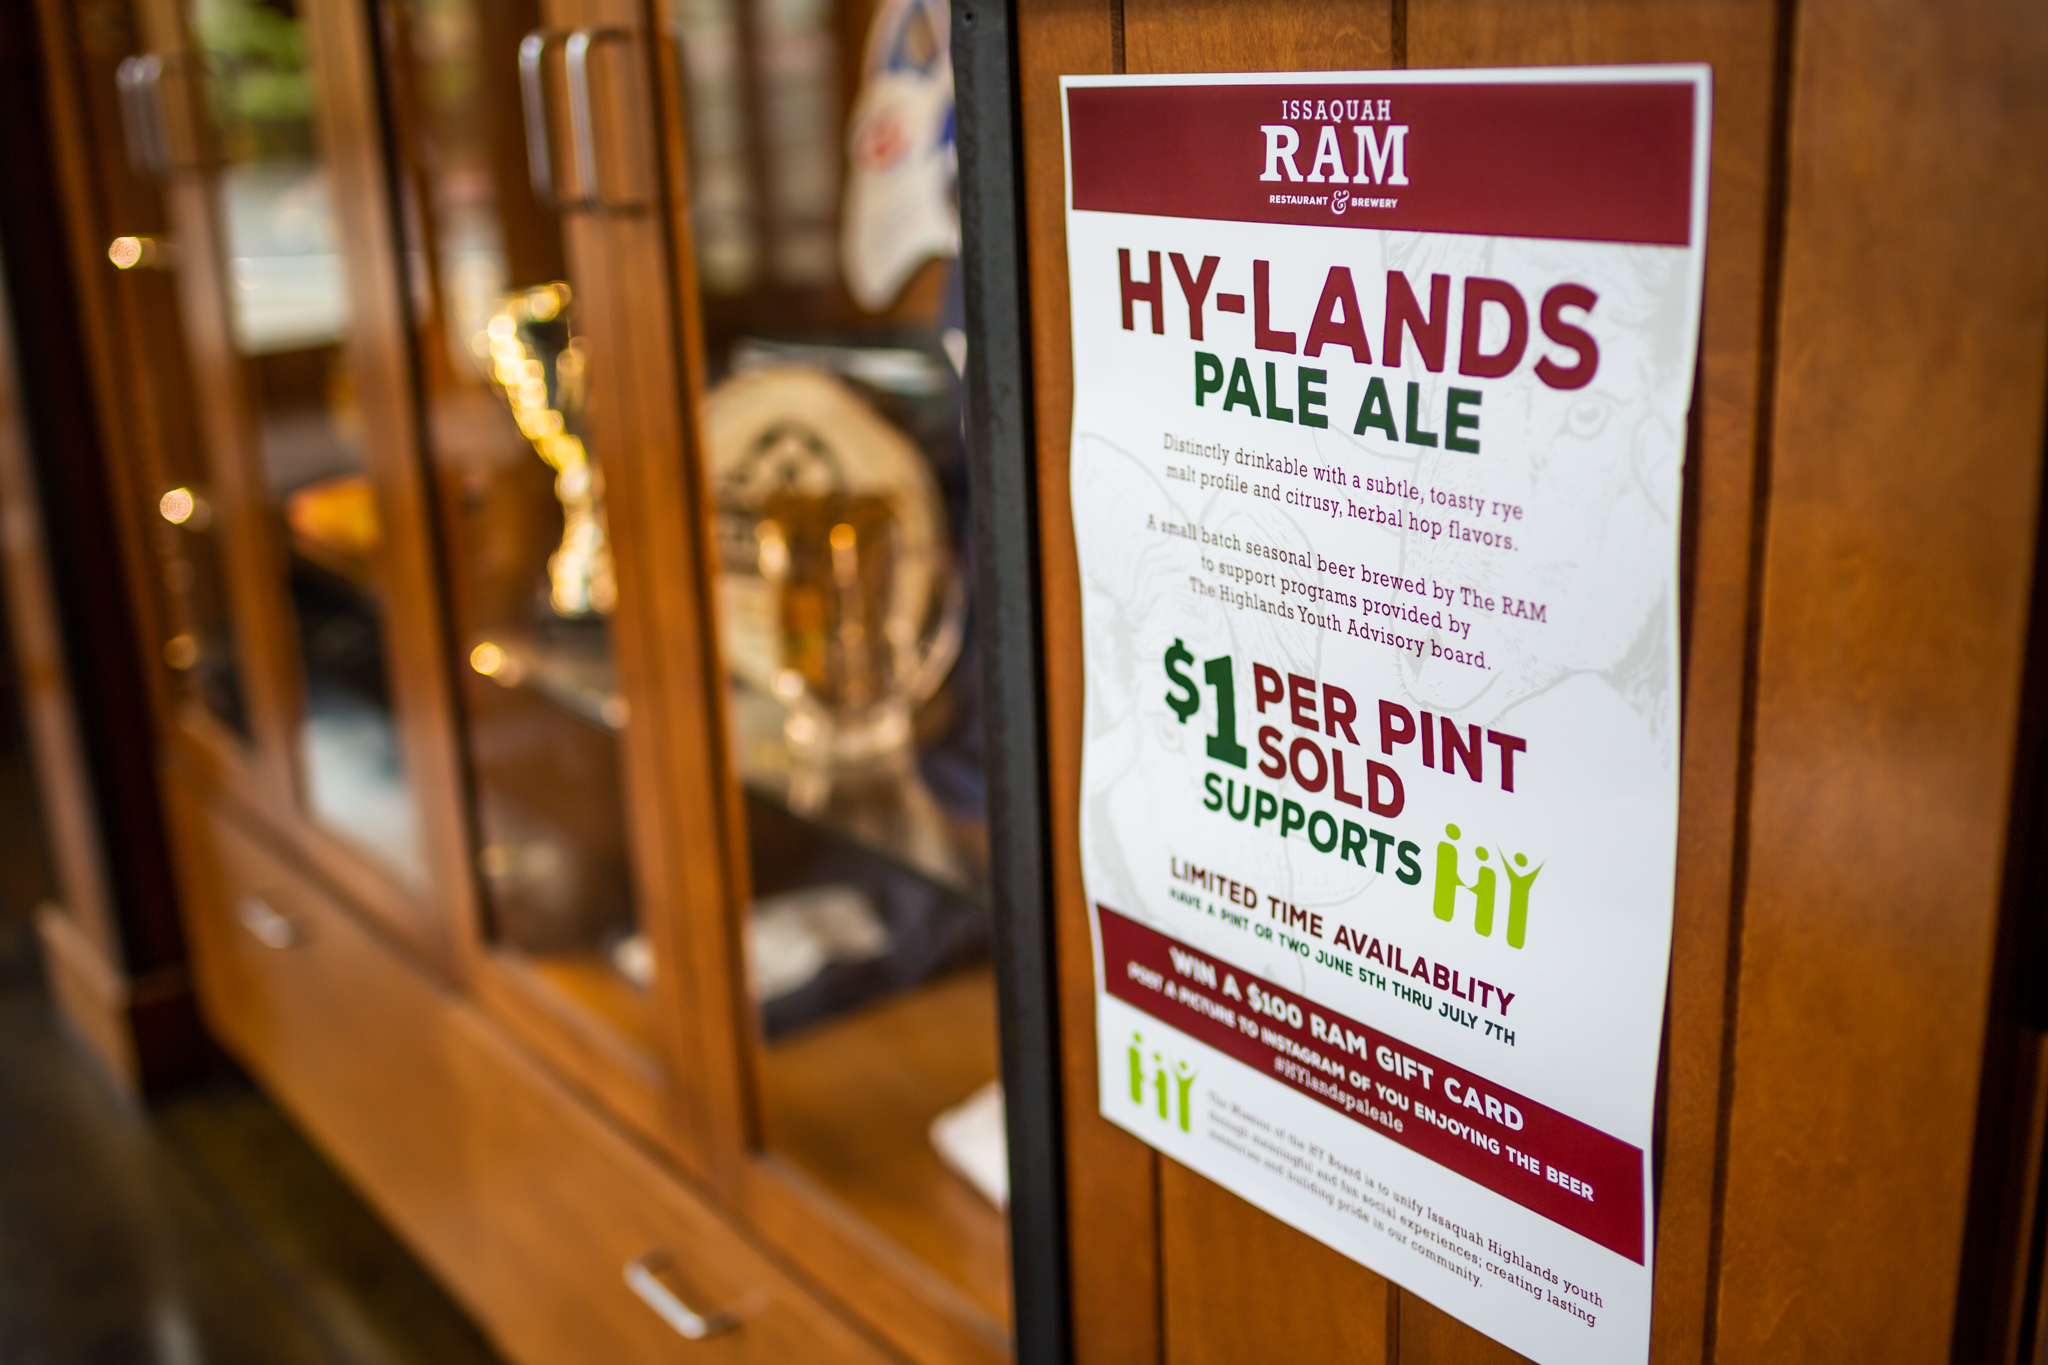 Sign on wall at RAM for Hy-Lands Pale Ale charity donation